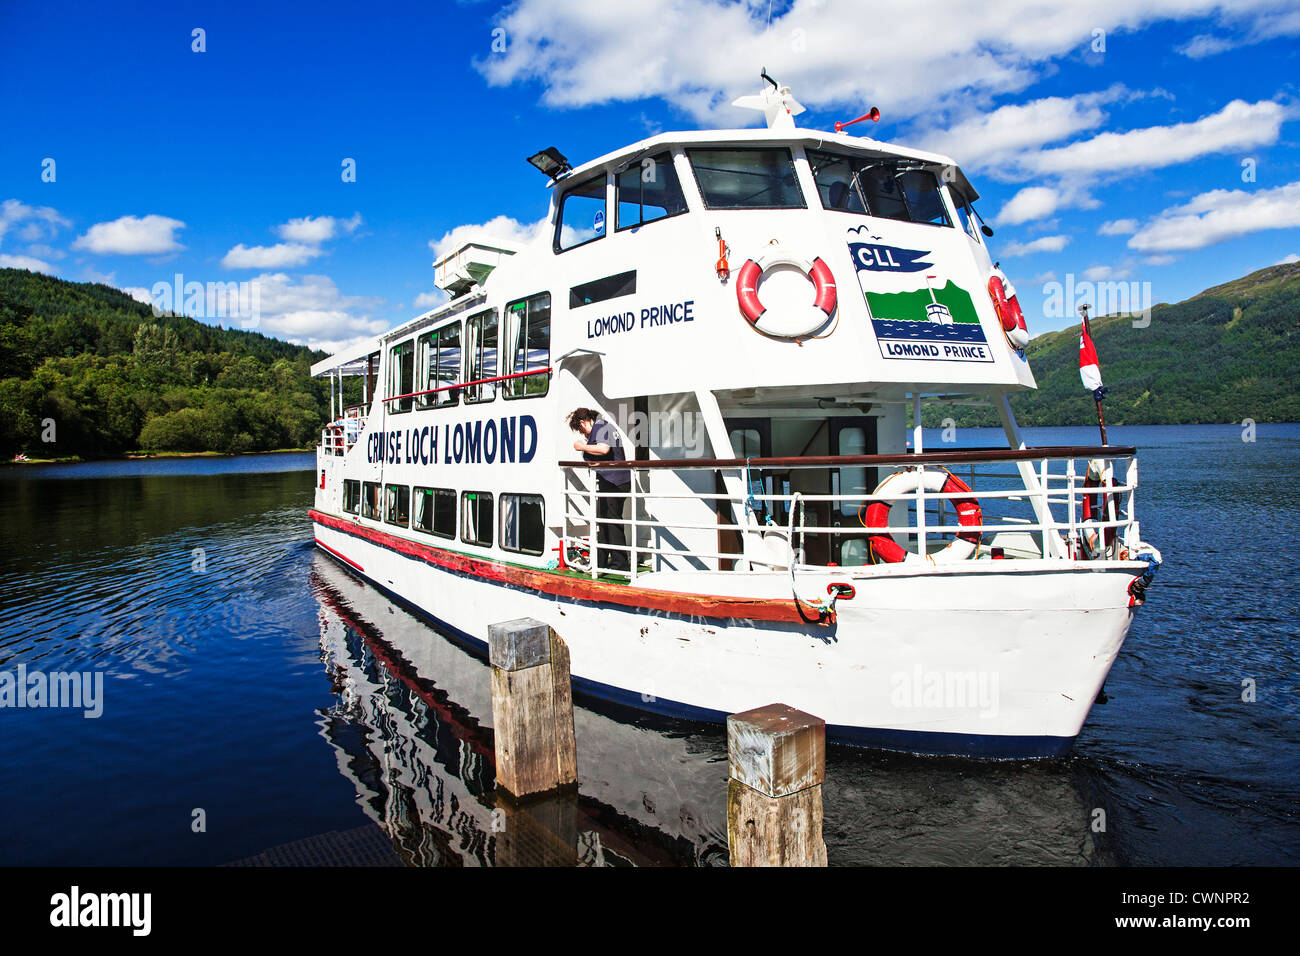 Cruise boat sets sail on Loch Lomond from Tarbet pier, Scotland. - Stock Image